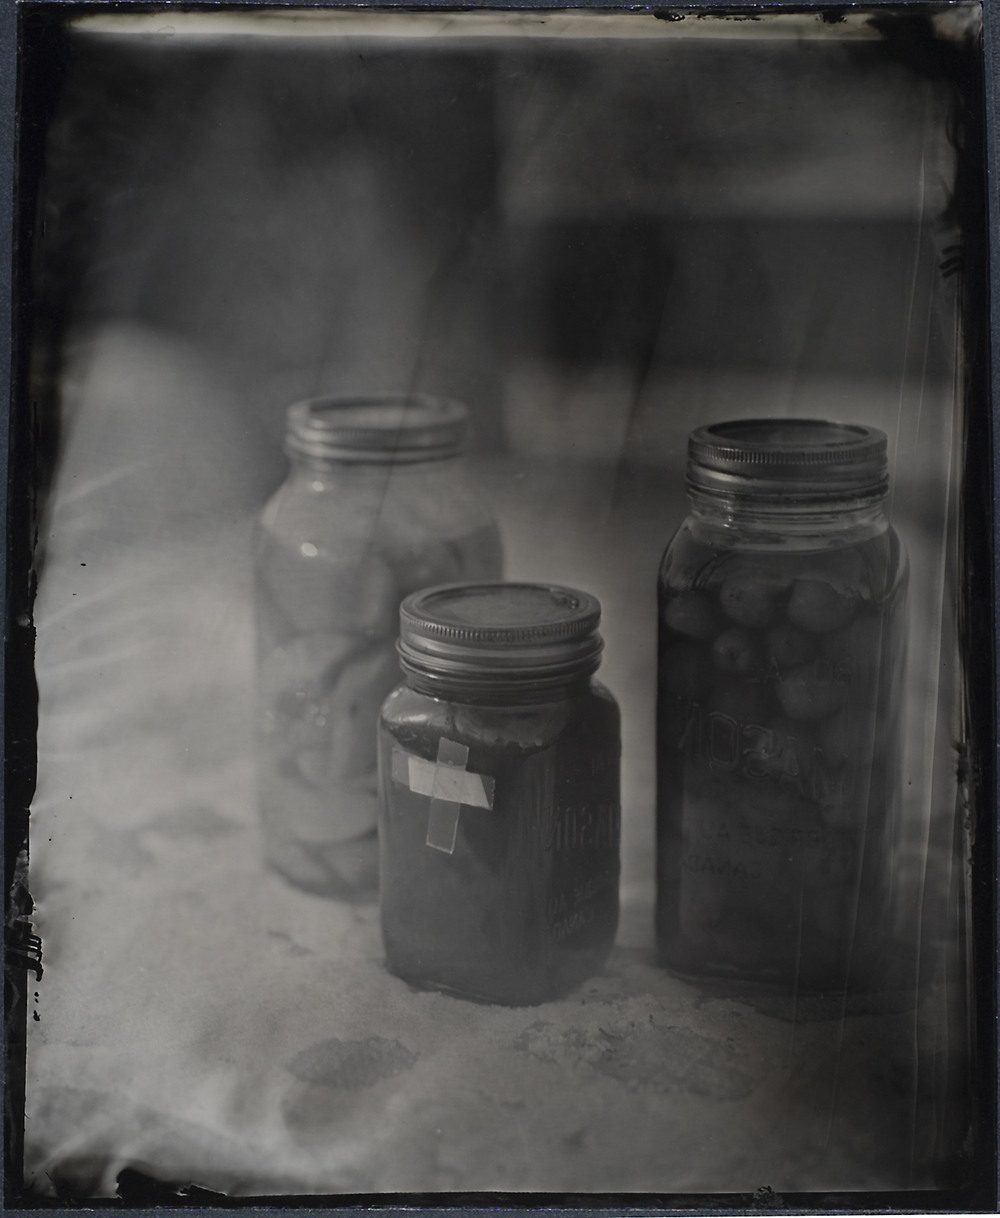 11 x 14 Wetplate Collodion aluminotype made with The Cardboard Supreme sliding box camera.